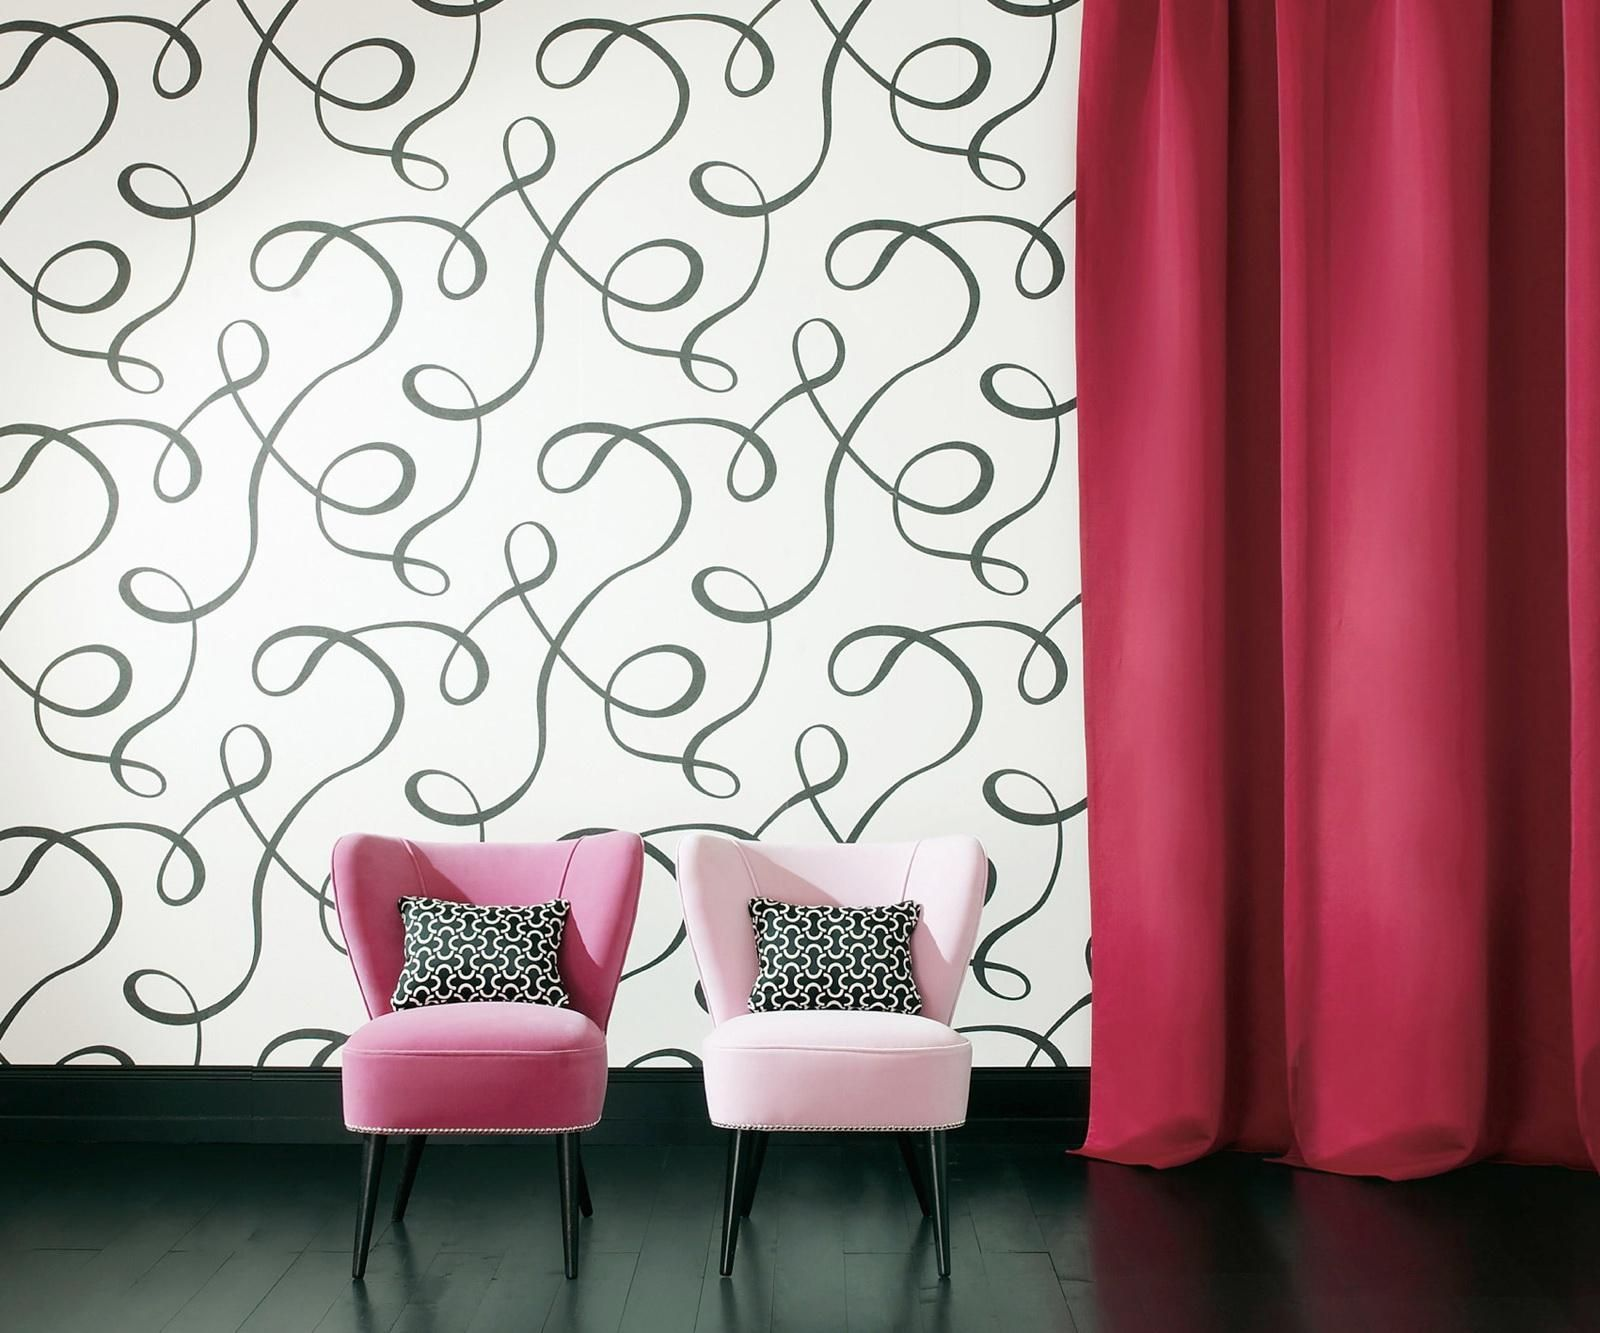 Wonderful Wallpaper Design For Decorating Your Modern House Interio ...